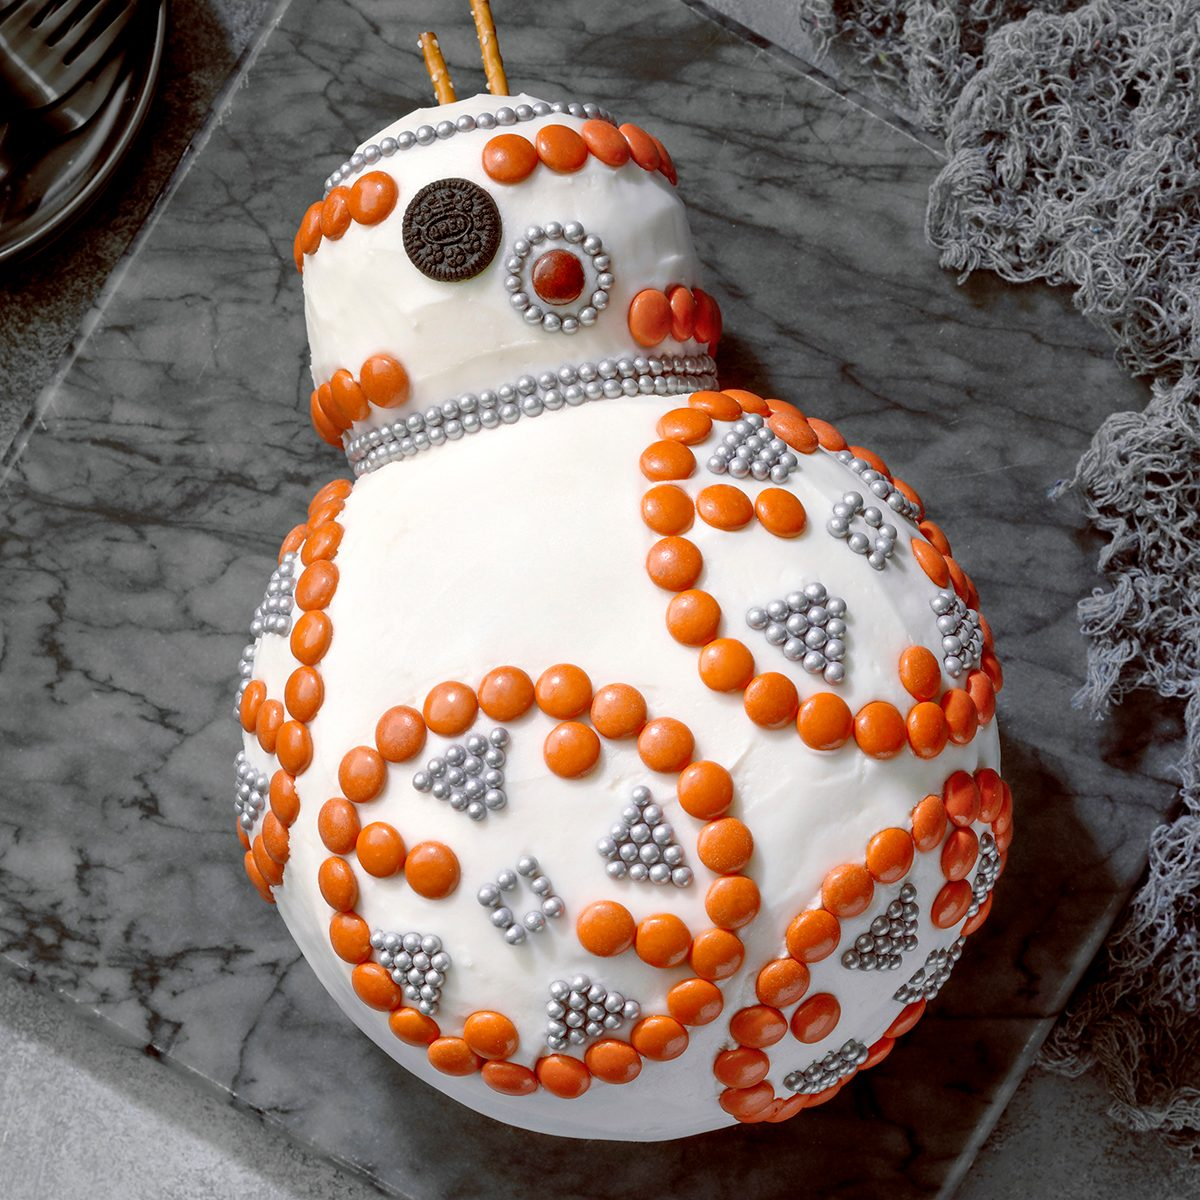 BB-8 Cake; overhead camera angle; Gray surface; gray cutting board; cake; star wars; May the 4th be with you; dessert; cake